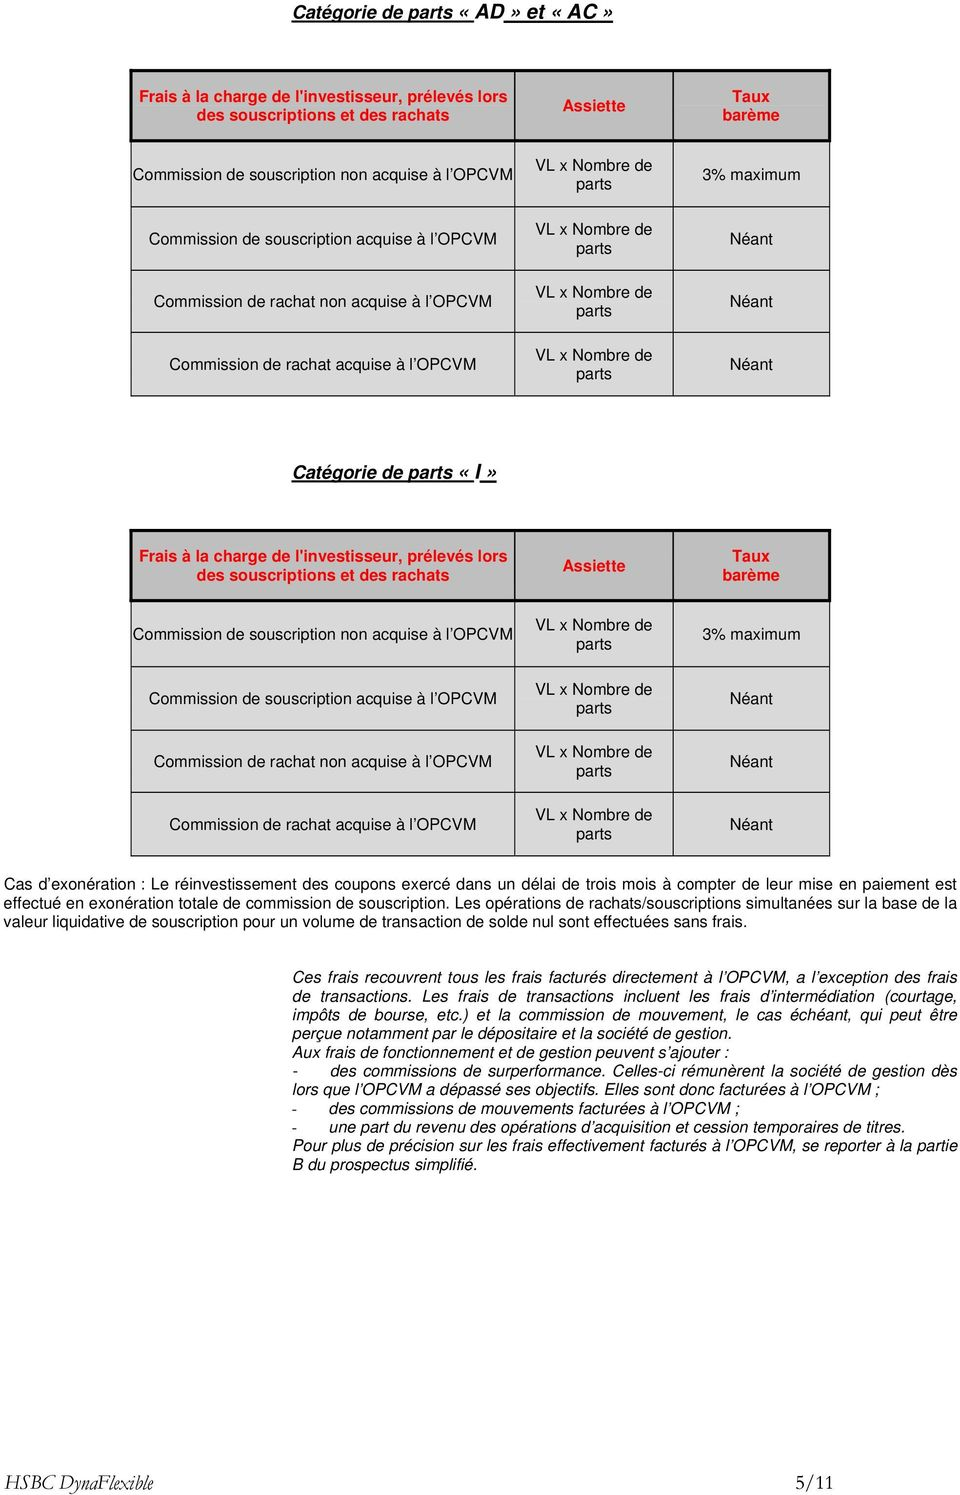 souscriptions et des rachats Assiette Taux barème Commission de souscription non acquise à l OPCVM Commission de souscription acquise à l OPCVM Commission de rachat non acquise à l OPCVM Commission